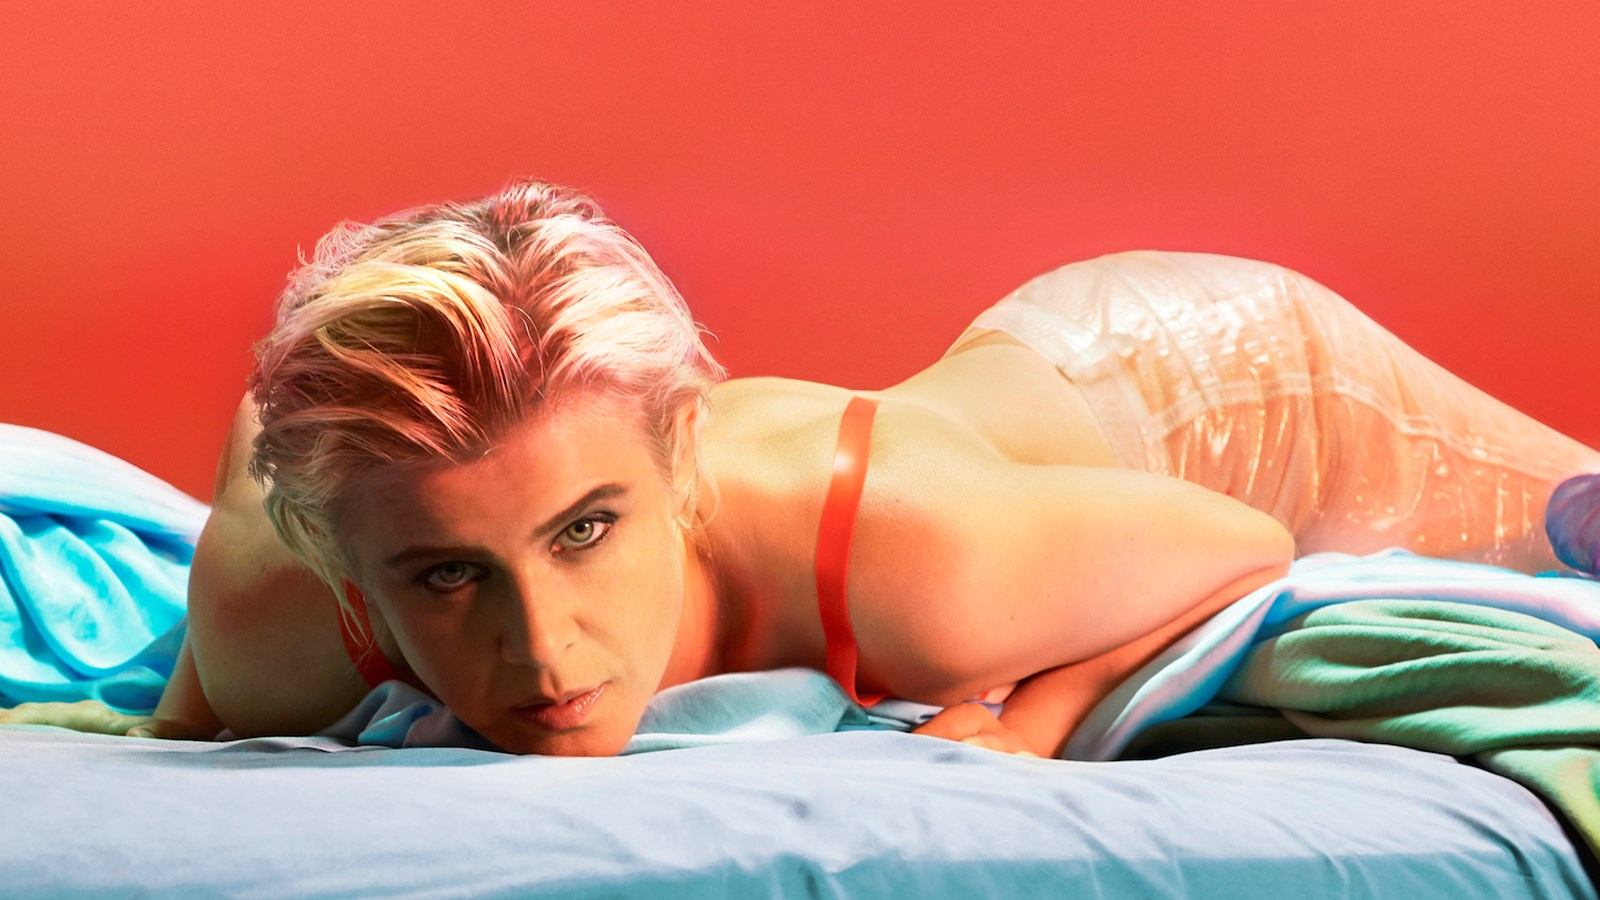 Where To Start With... Robyn